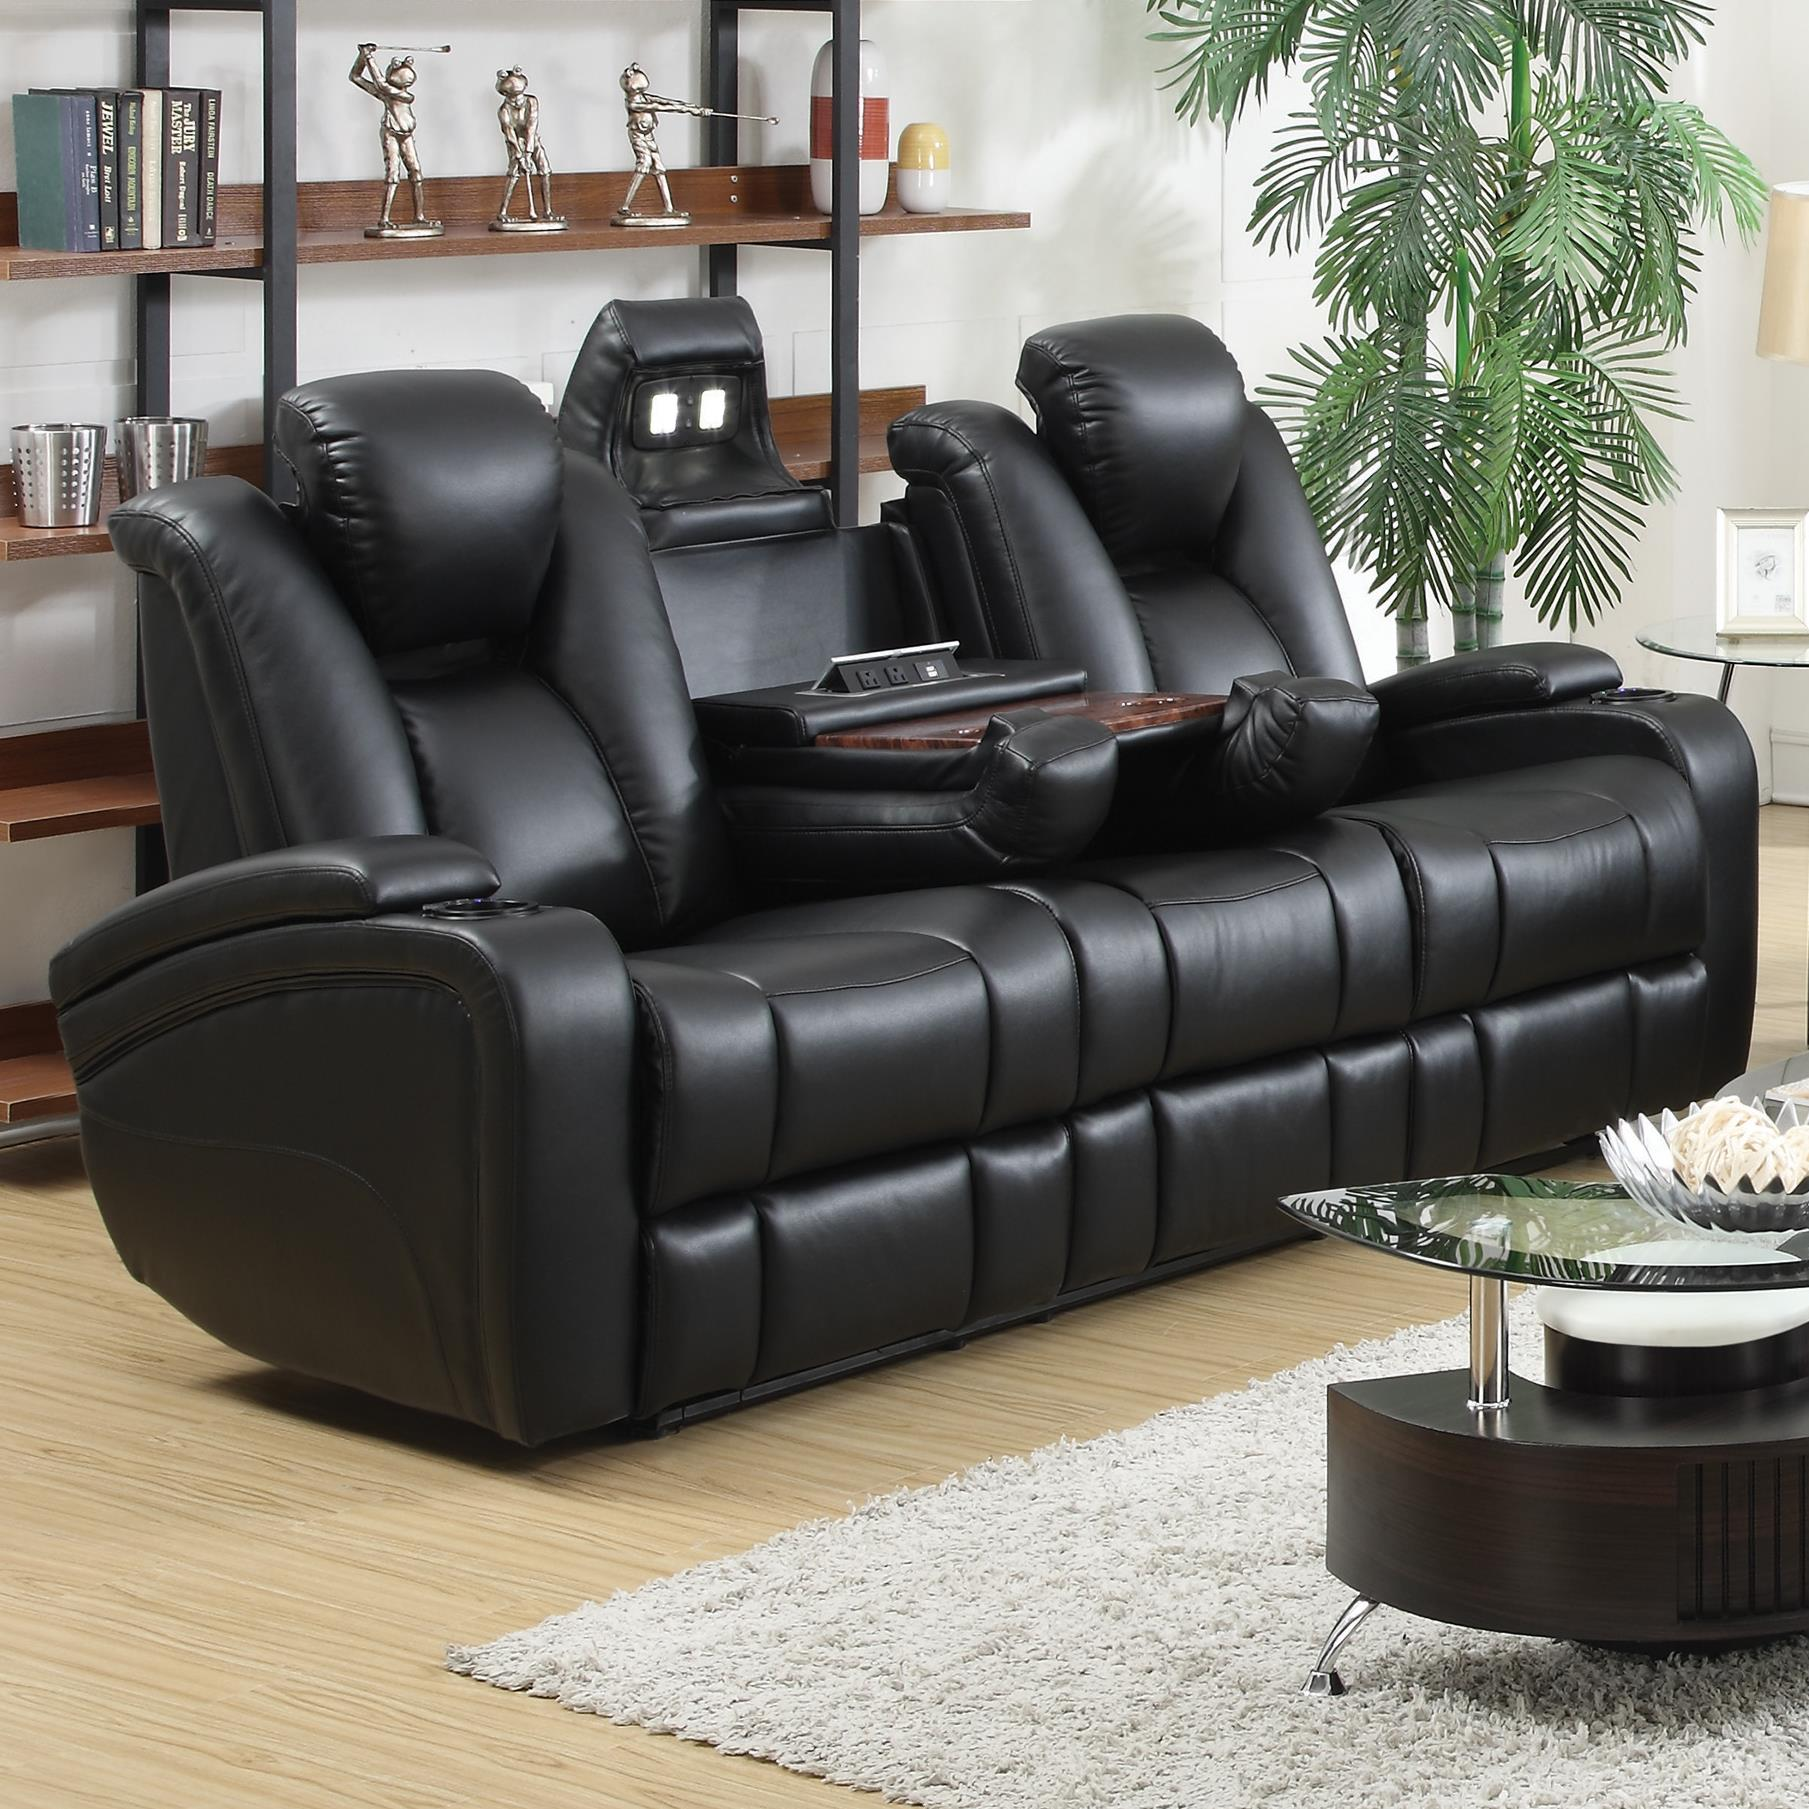 Coa601741 Sofa Only Power Headrest Power Led Lights Cup Holder And More Features Reg 1499 Now 1099 Pina Furniture